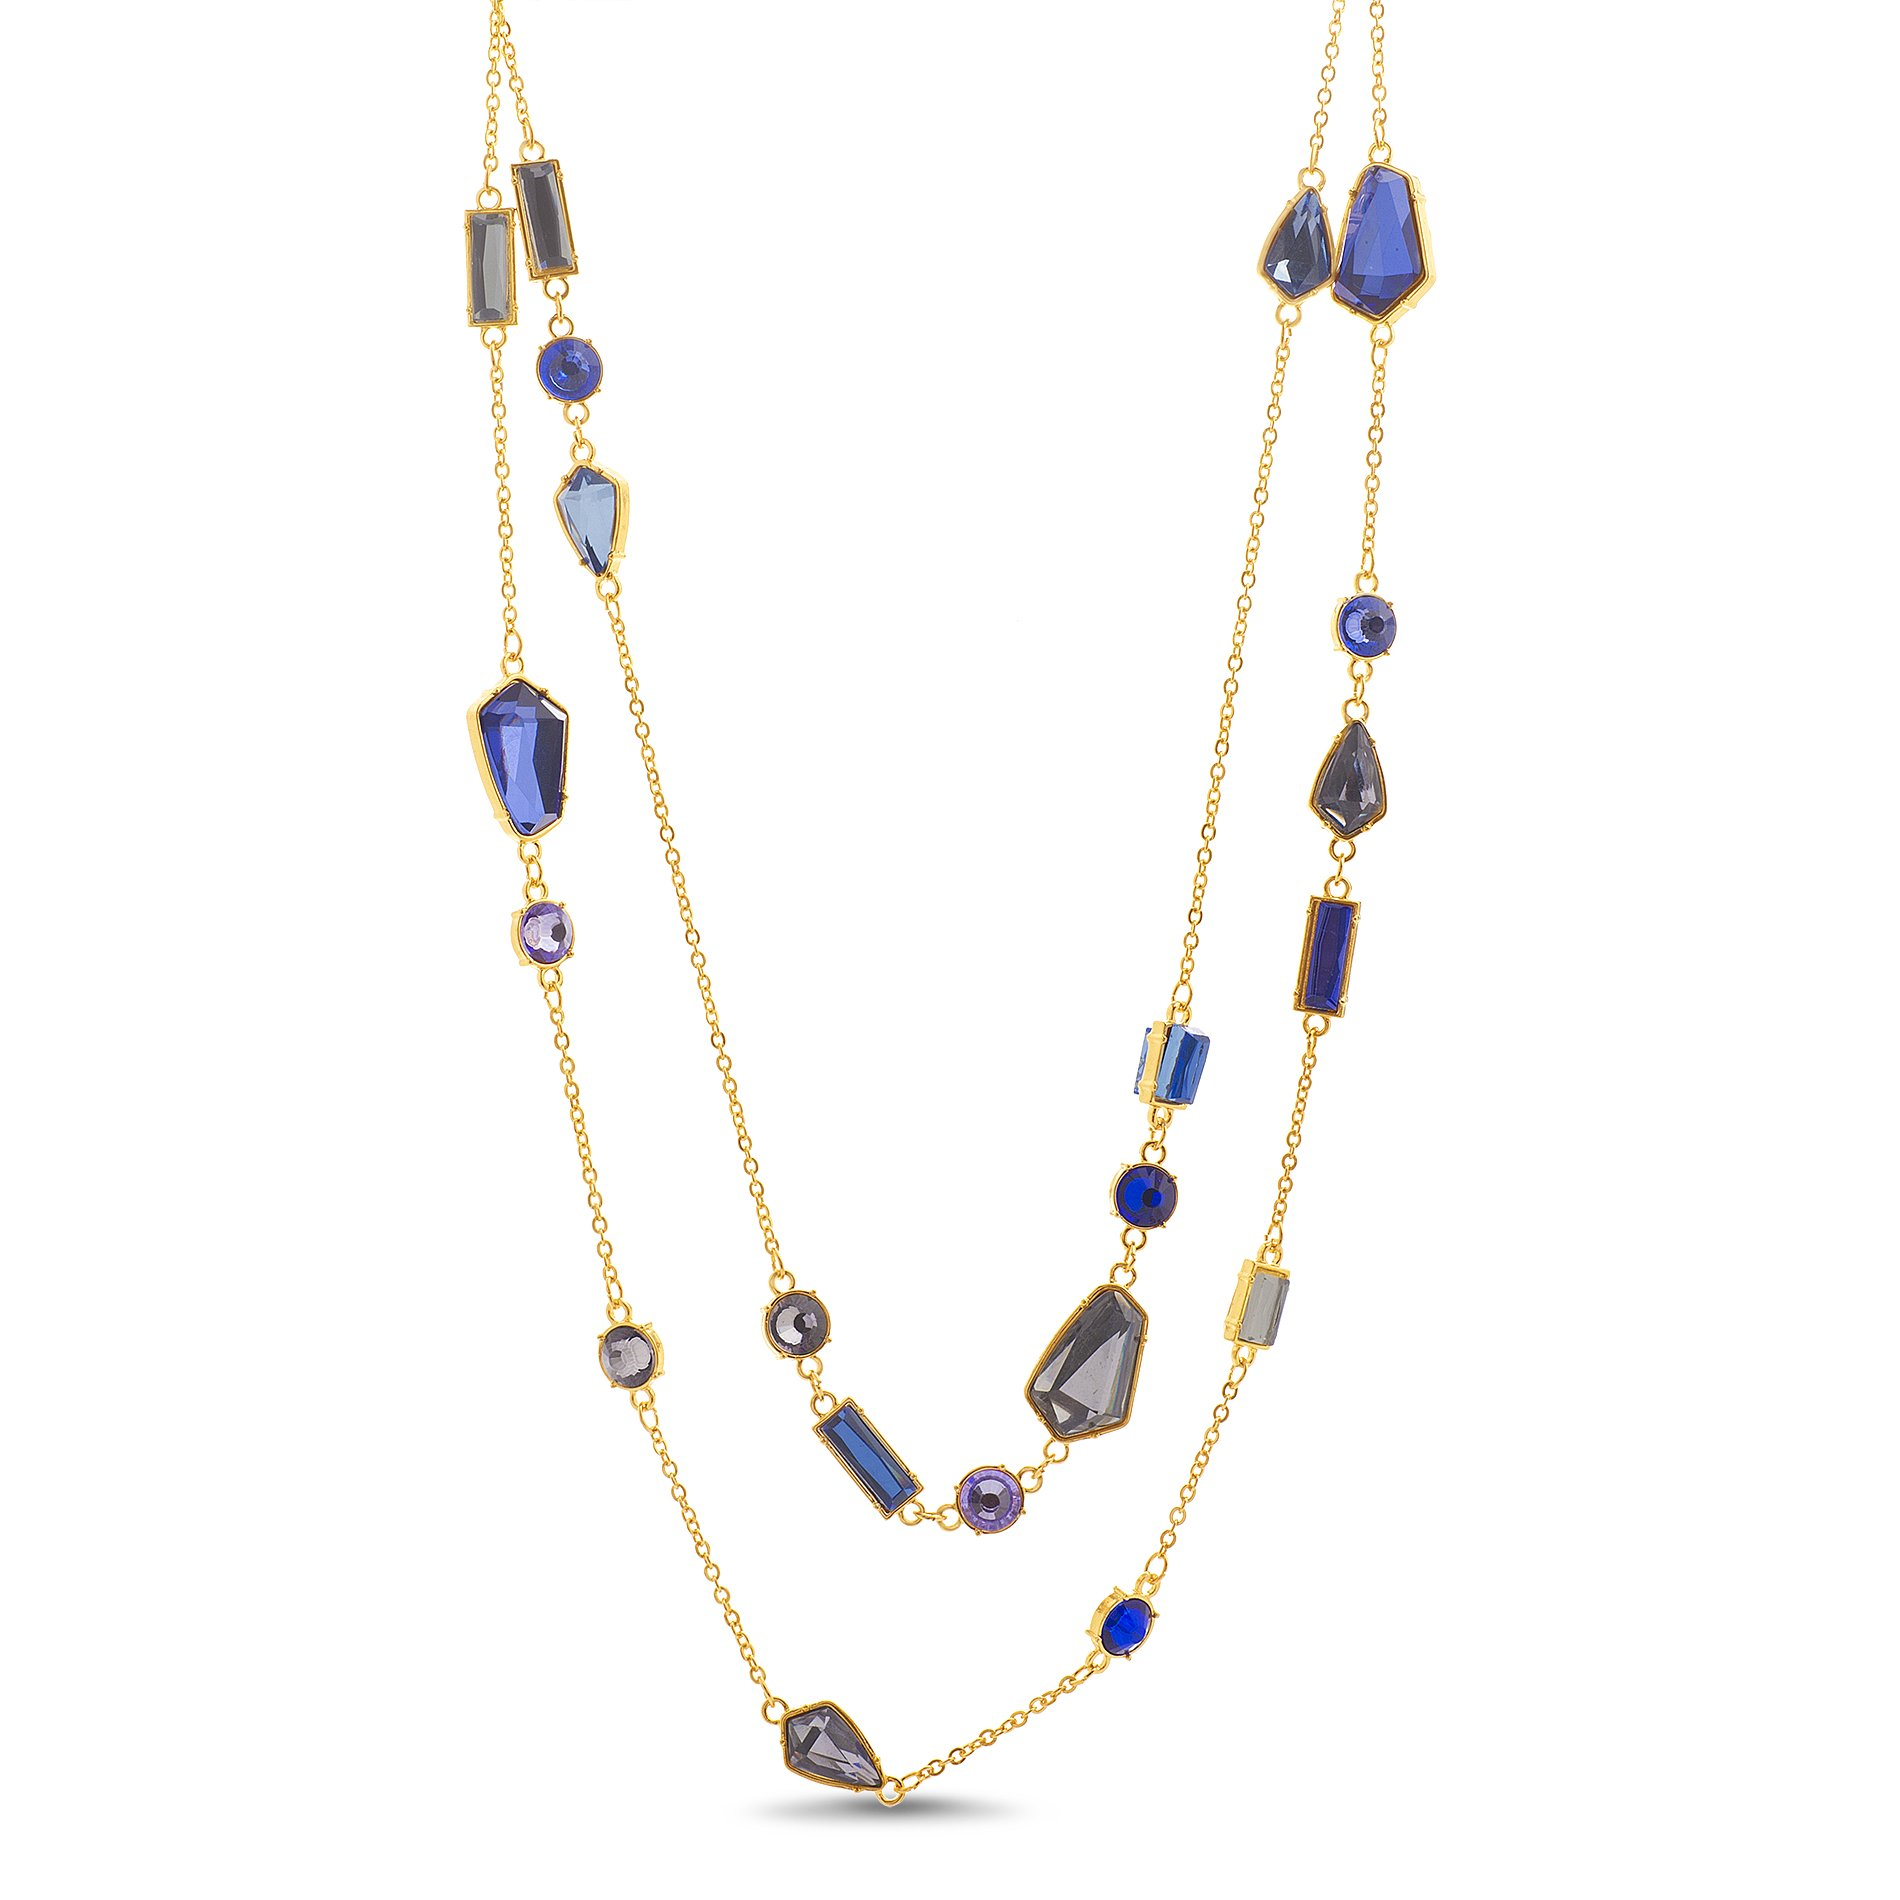 Catherine Malandrino Women's 60'' Multi-Colored Station Layered Wrapping Rolo Chain Yellow Gold-Tone Necklace (Blue)